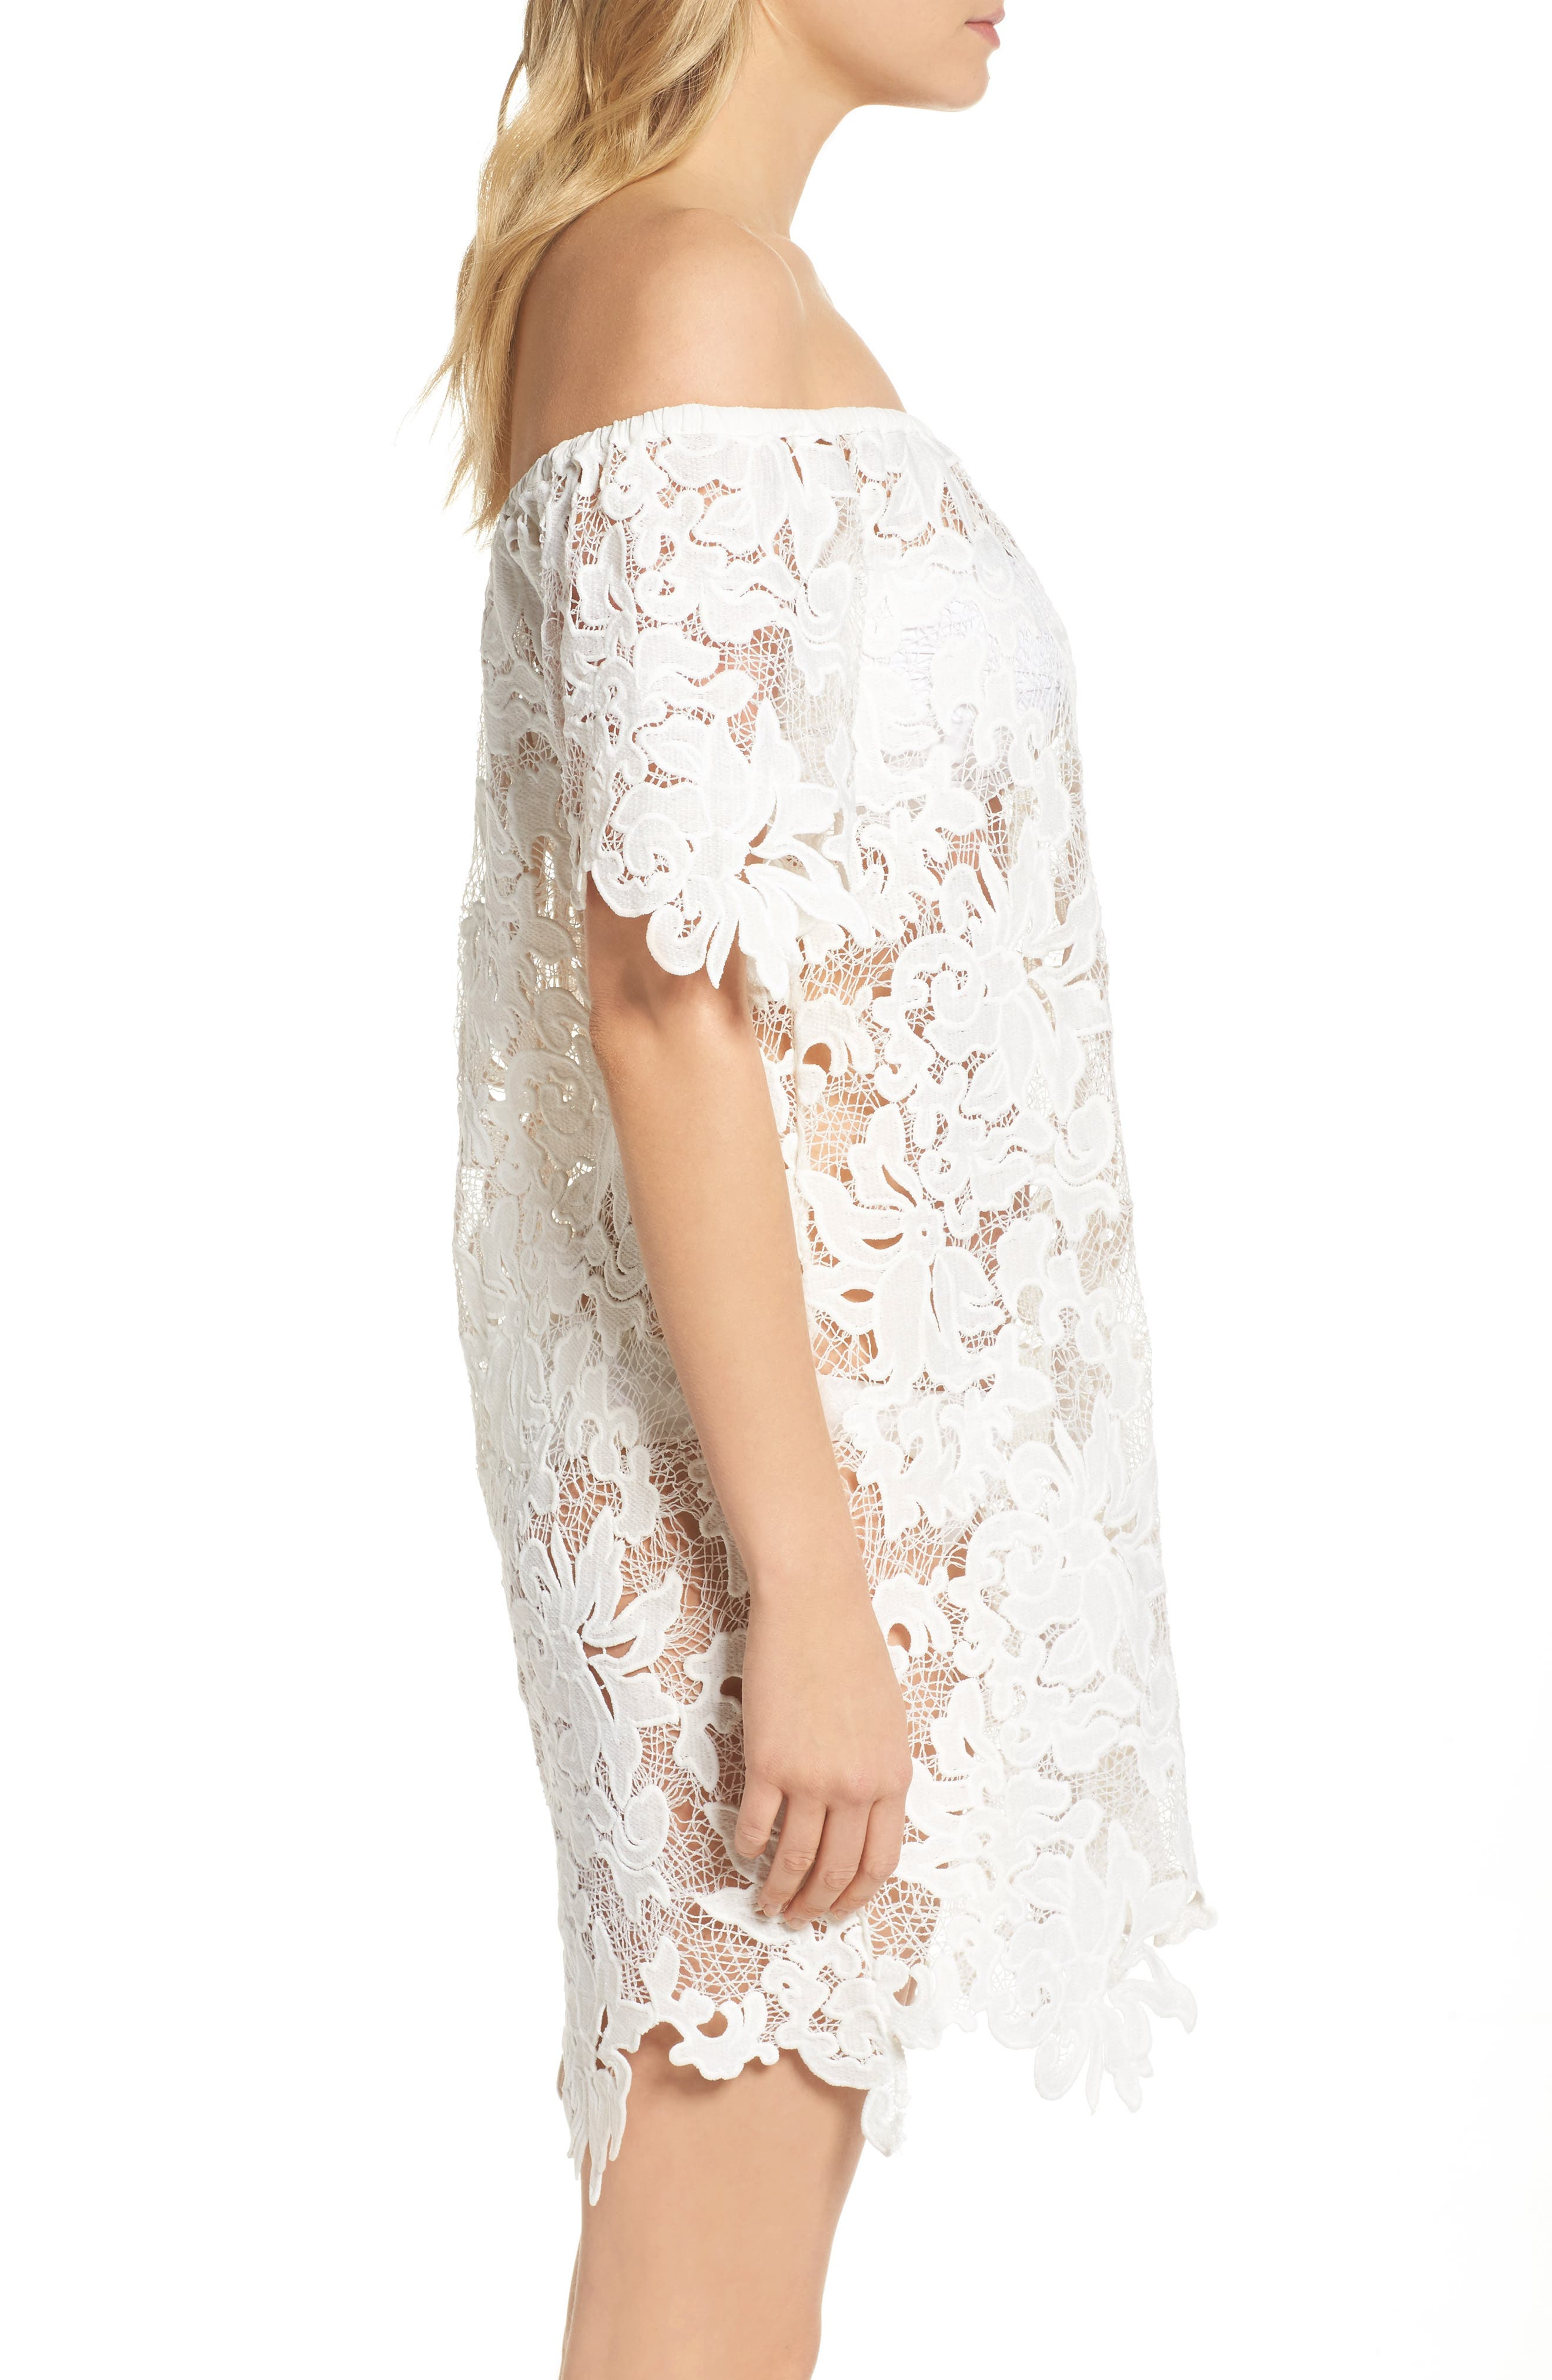 Ode Rosette Lace Cover-Up Dress,                             Alternate thumbnail 3, color,                             100